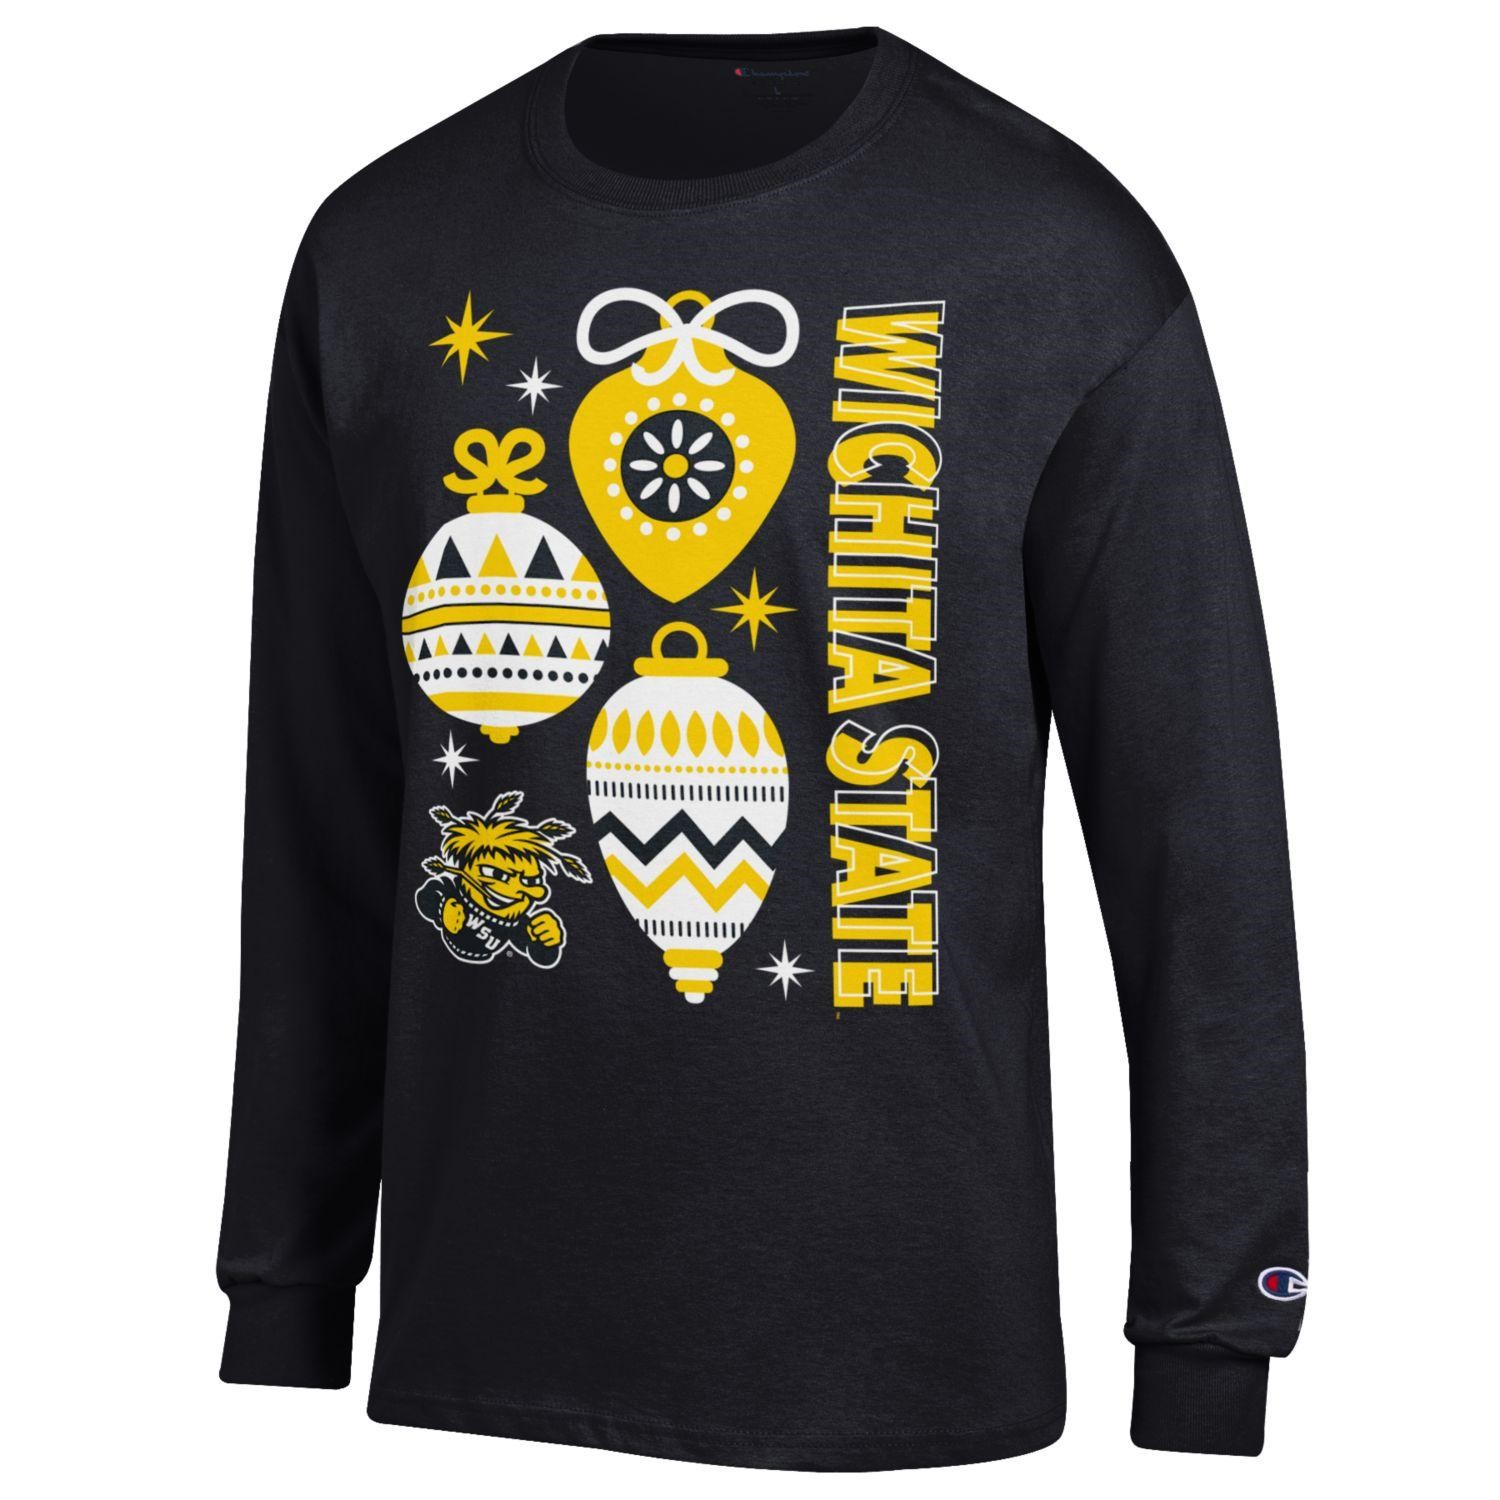 Cover Image For Wichita State™ Ugly Sweater Style Long Sleeve T-Shirt